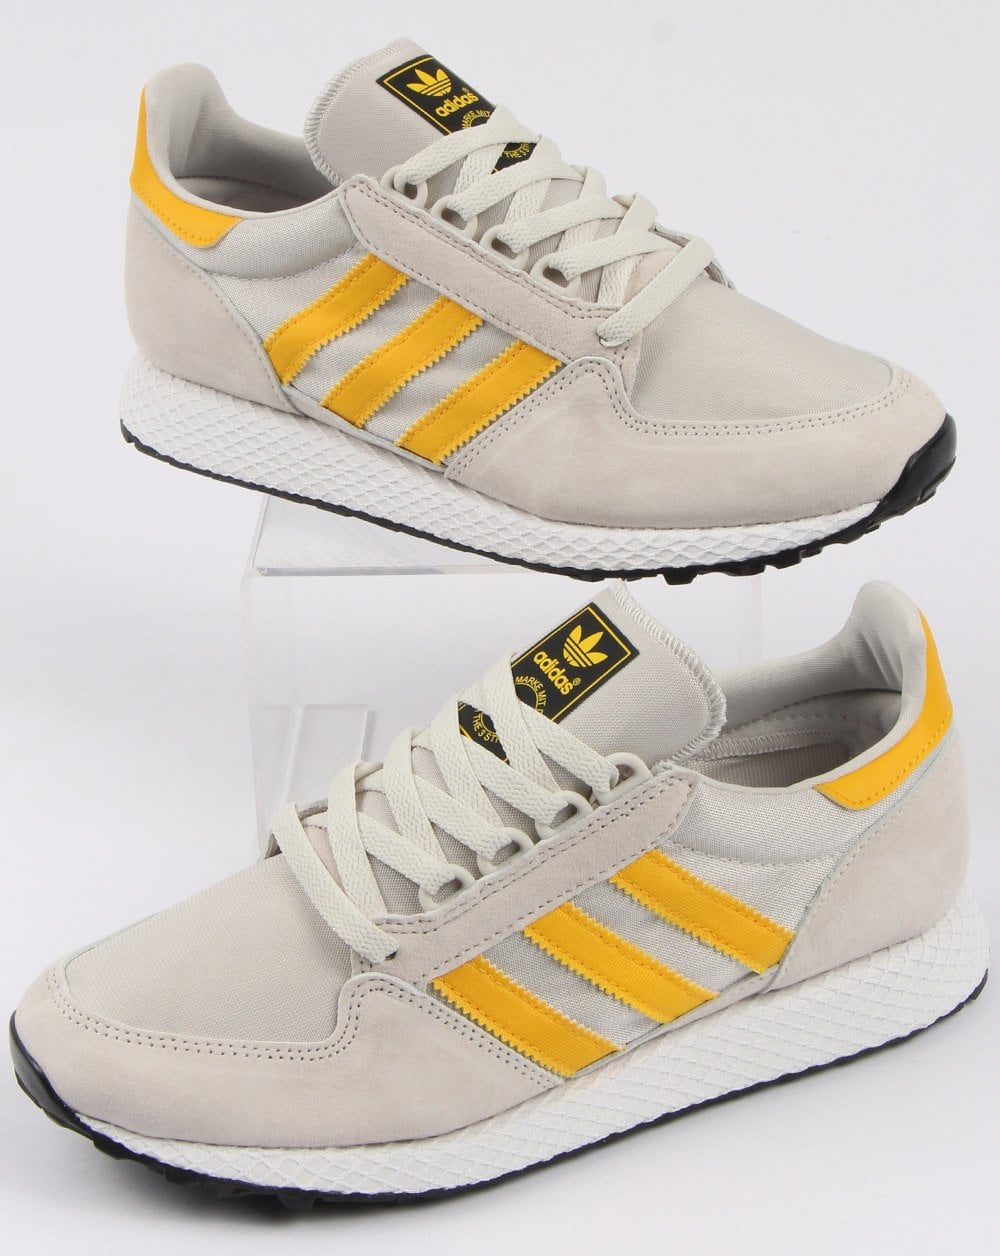 adidas white and yellow shoes